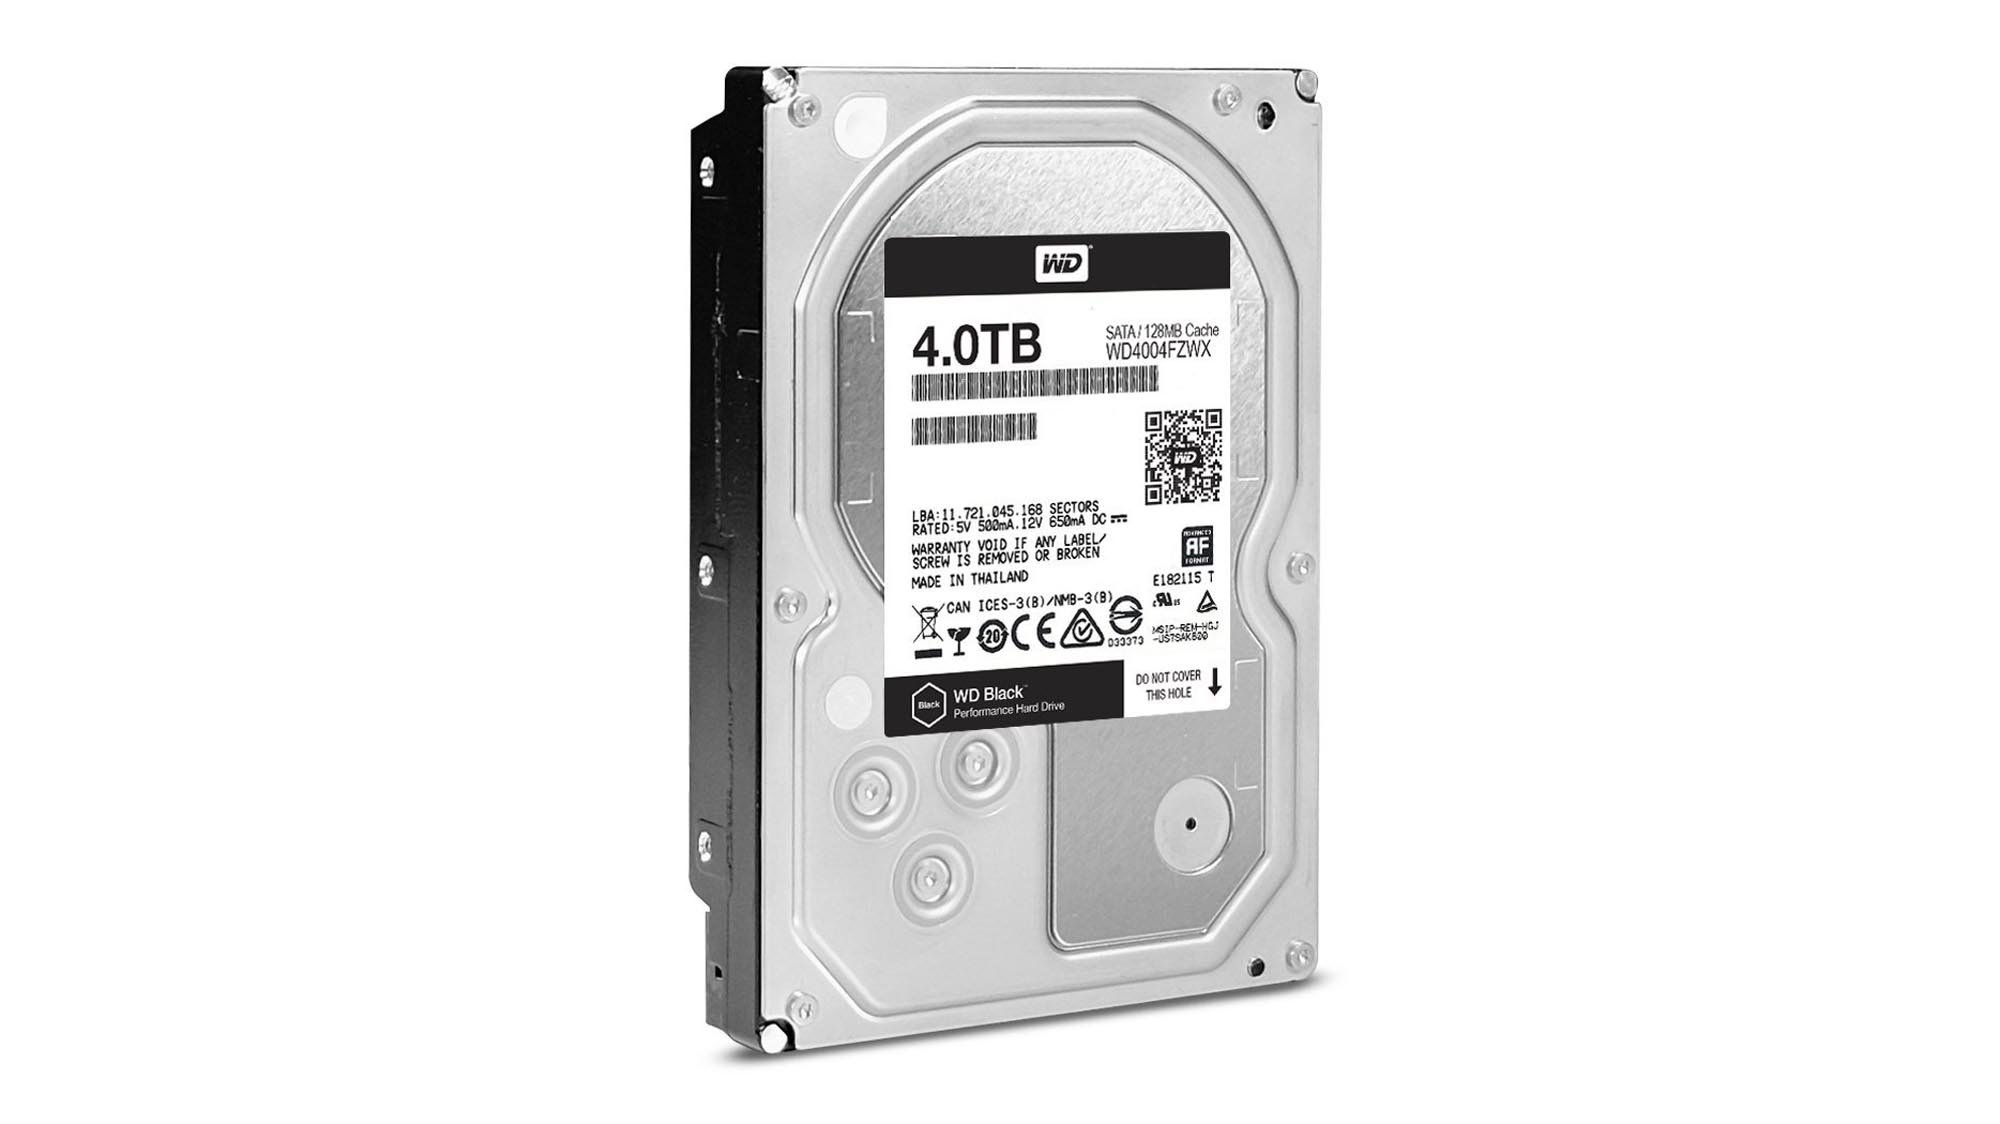 Best Internal Hard Drives 2018 The High Capacity Hdds To Buy Seagate Expansion 1tb Hdd Hd Hardisk Harddisk External 25 Wd Black Range Has A Reputation For Performance But We Found Speeds Werent Quite As Fast Barracuda Pro 6tb Drive